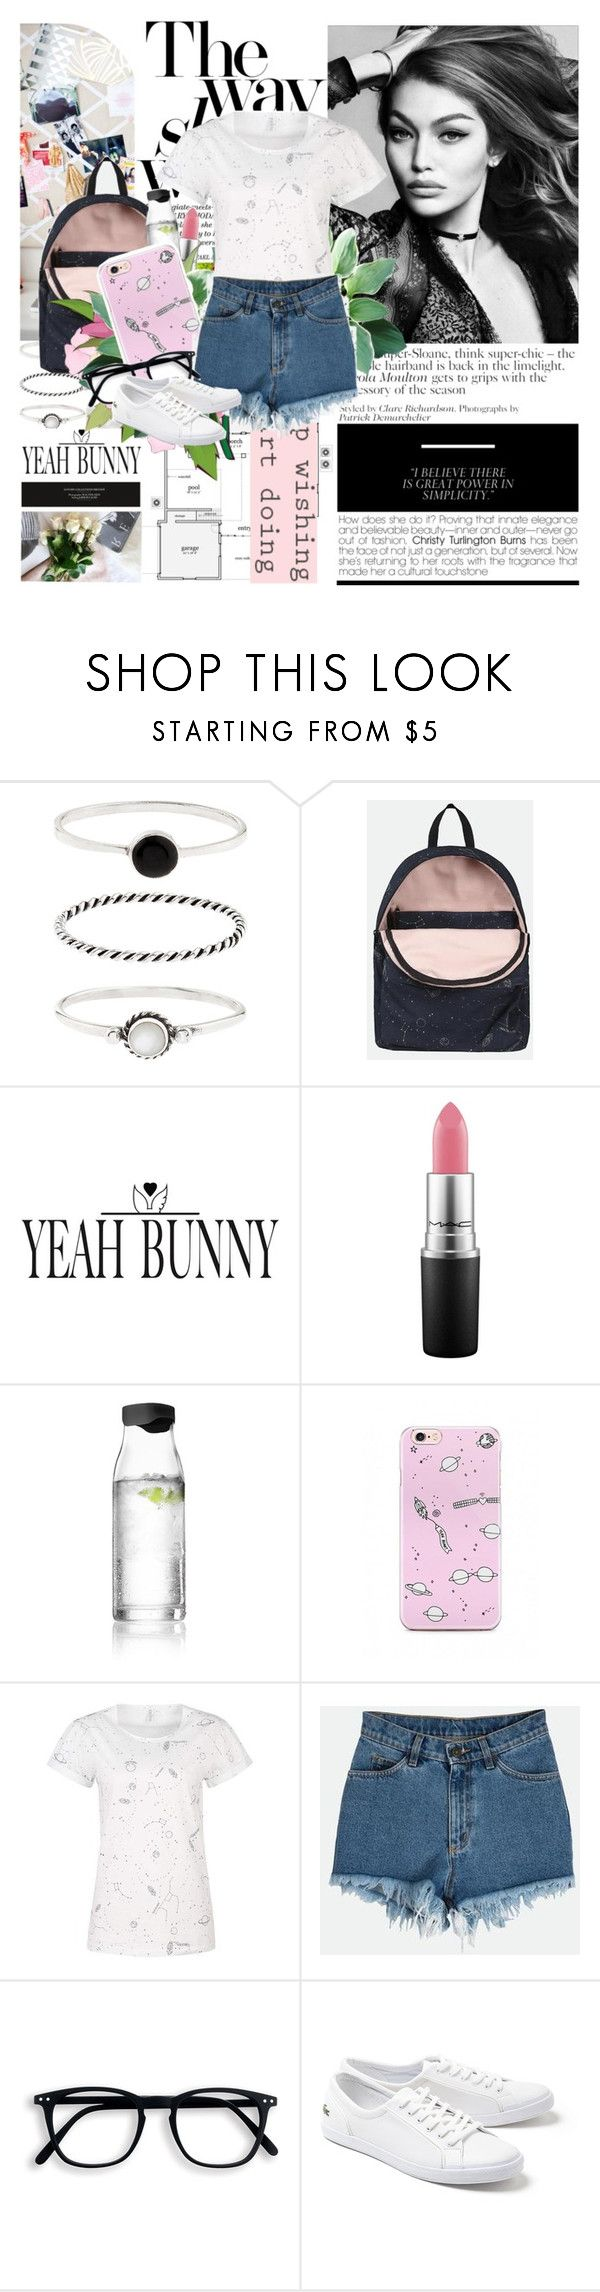 """Gigi Hadid"" by mars ❤ liked on Polyvore featuring Accessorize, Yeah Bunny, MAC Cosmetics, Menu and Lacoste"